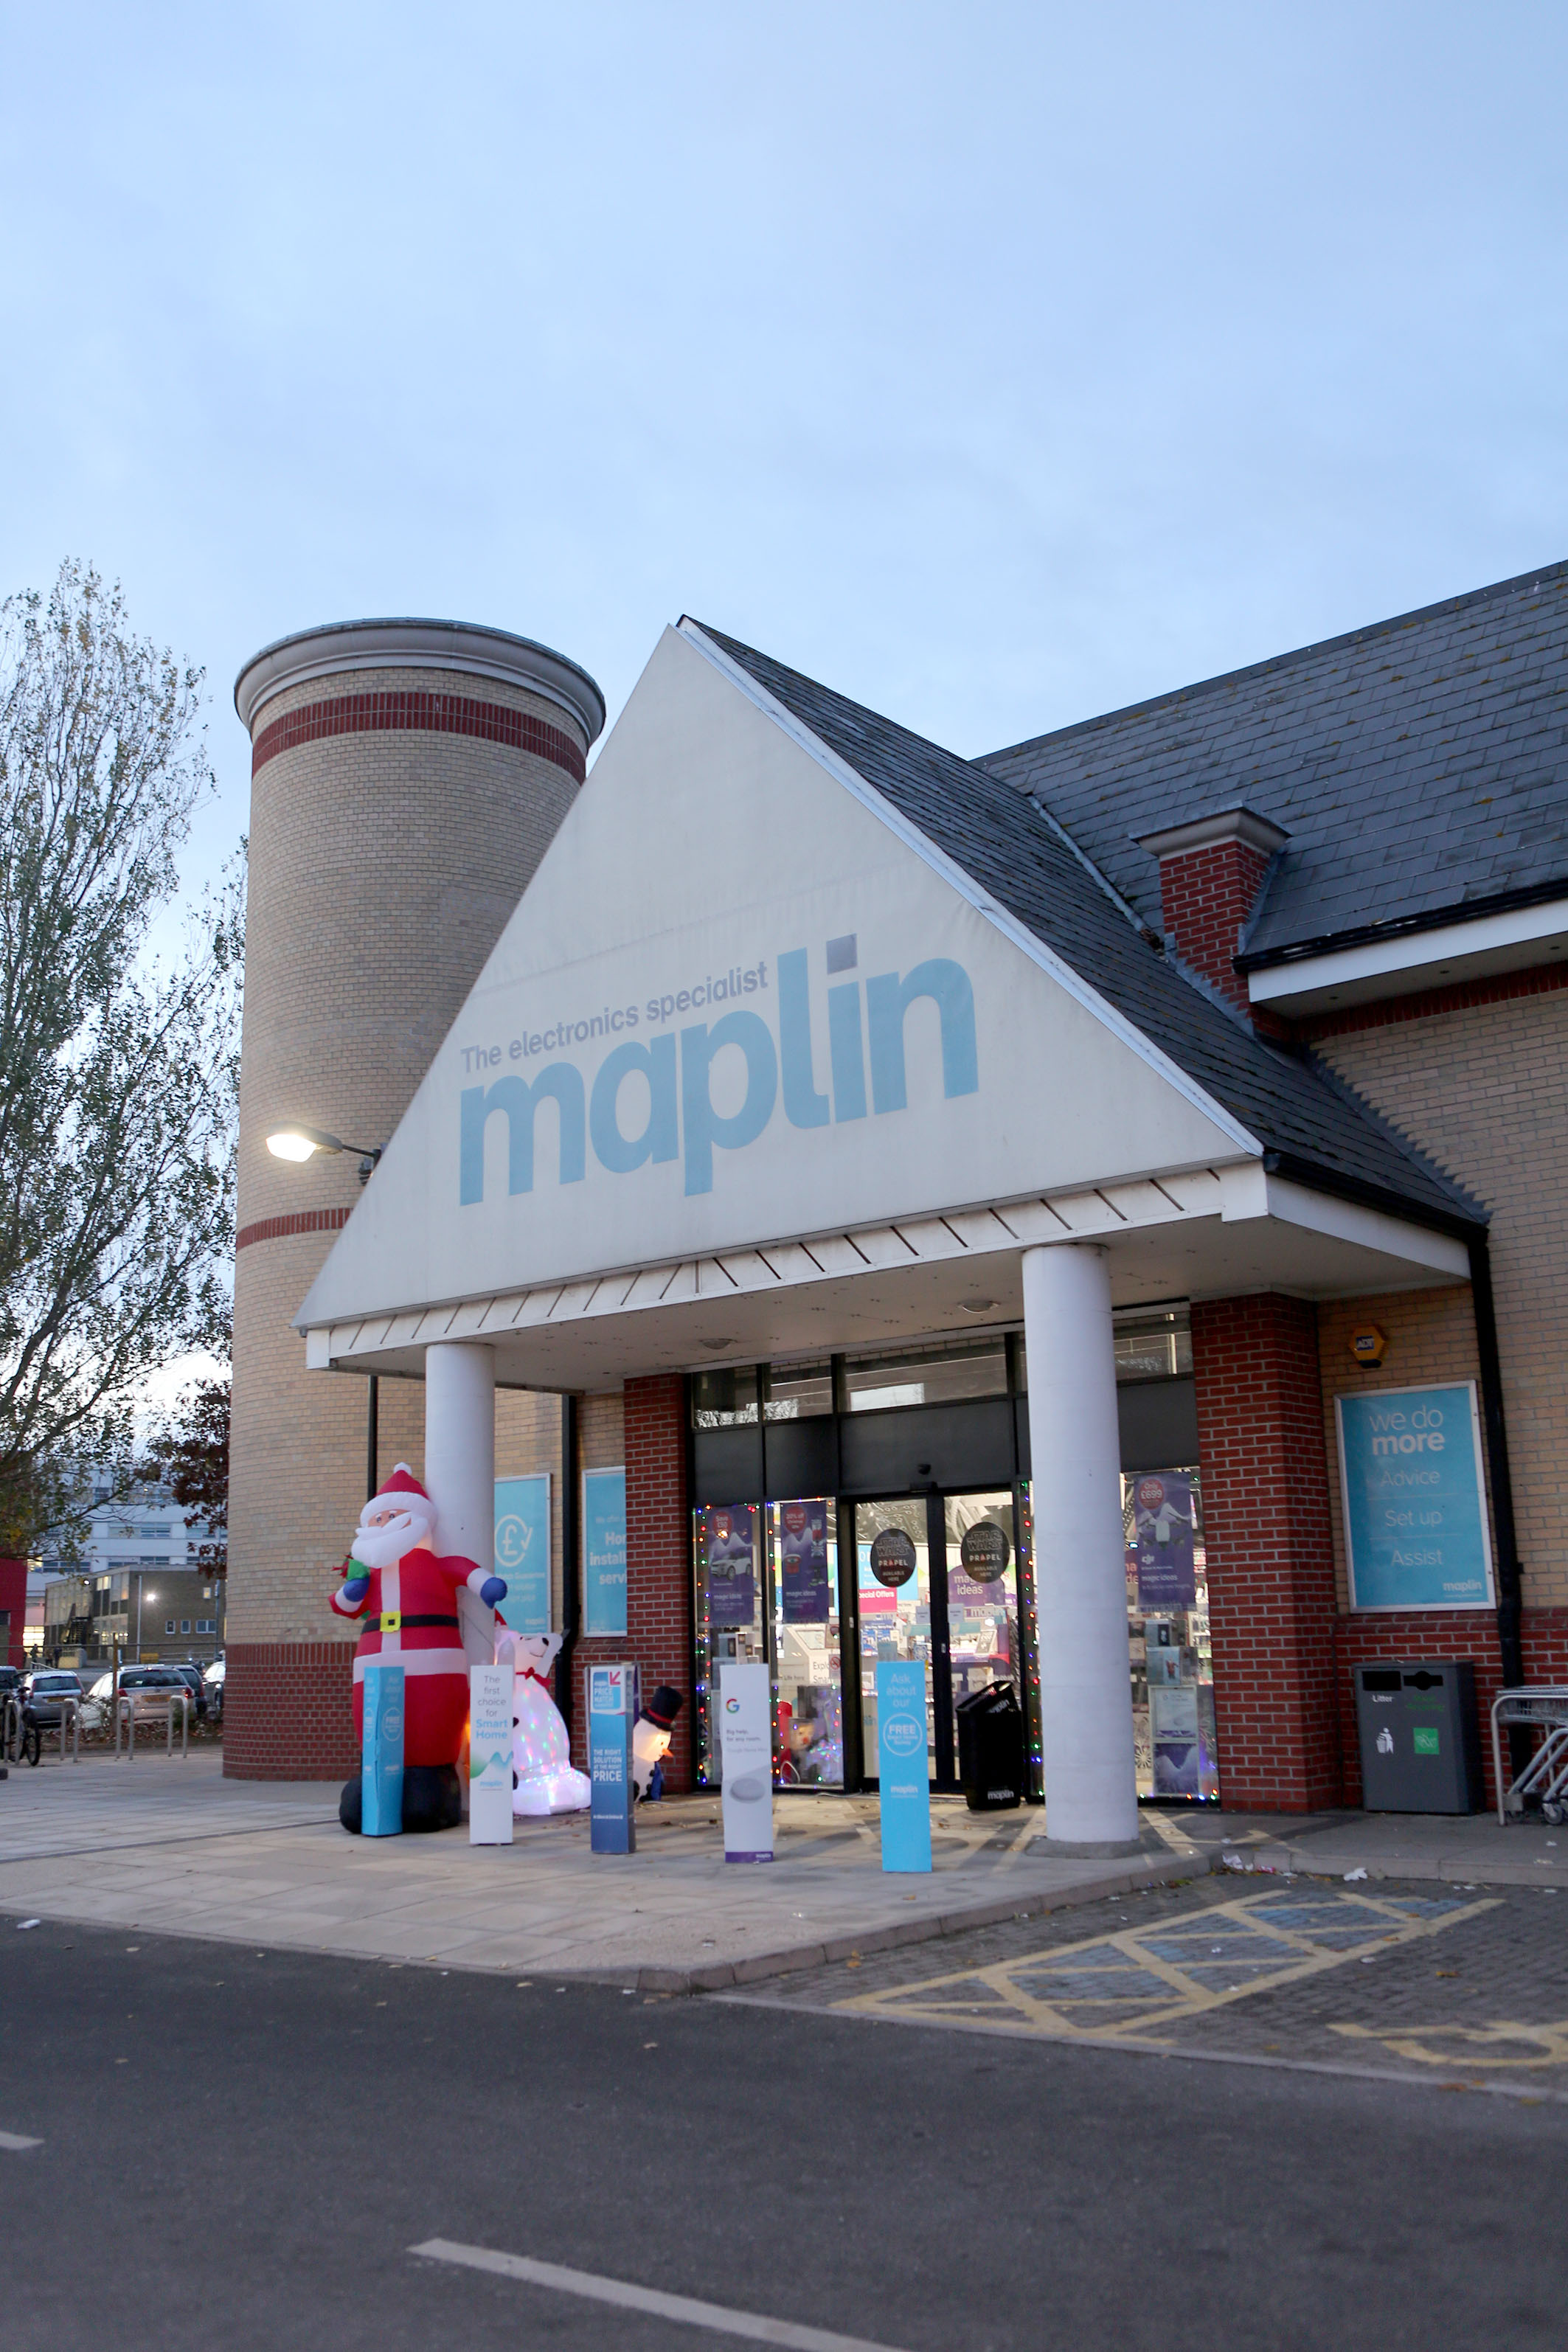 Maplin joins Toys R Us by entering administration, throwing jobs into doubt